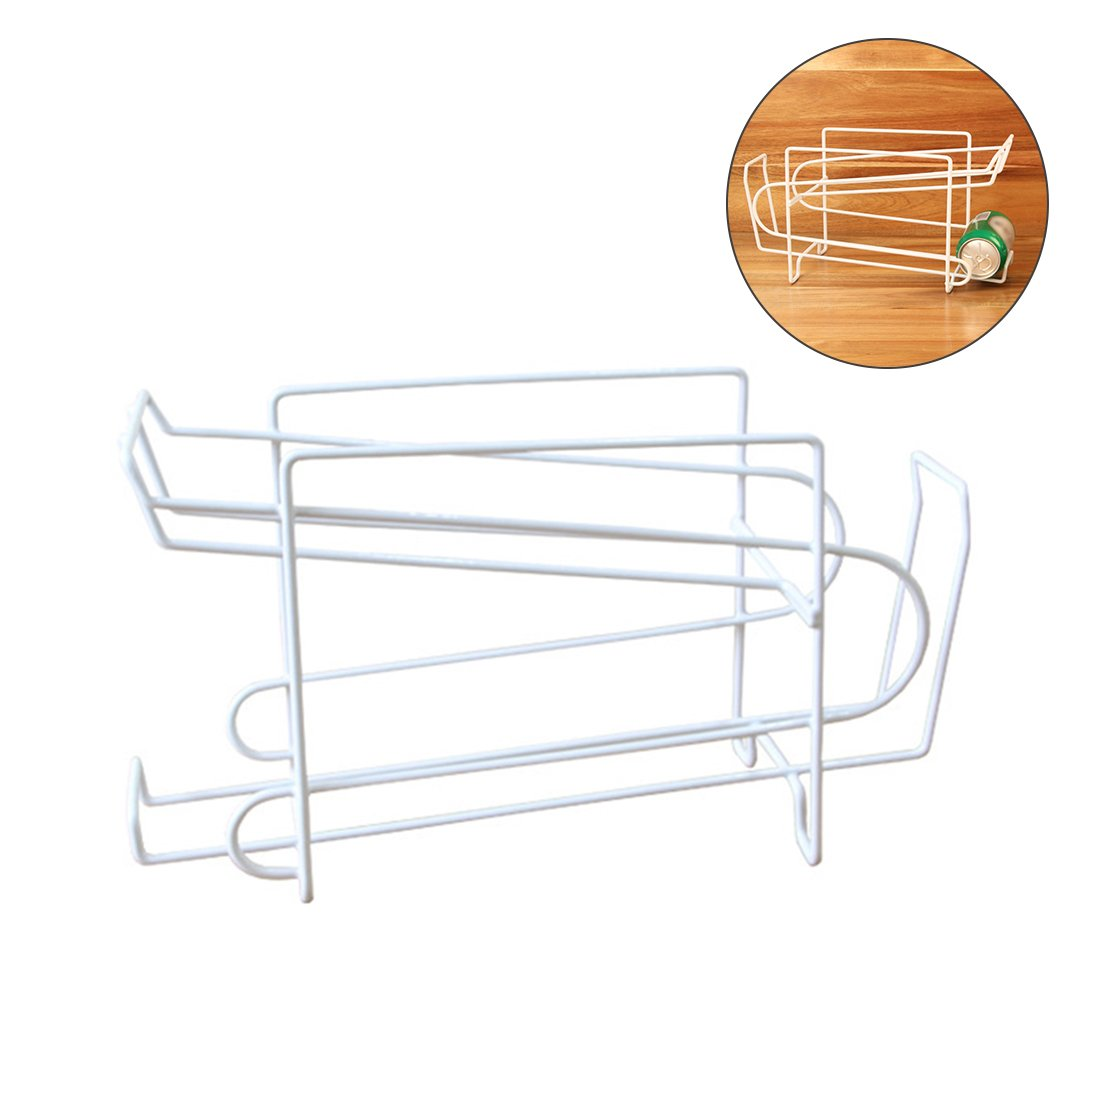 Soda Beer Can Beverage Dispenser Organizer Space Saving Rack Double Layers Sturdy Iron Fridge Shelf Refrigerator Stand Kitchen Fridge Pantry Art Space Saving Tools